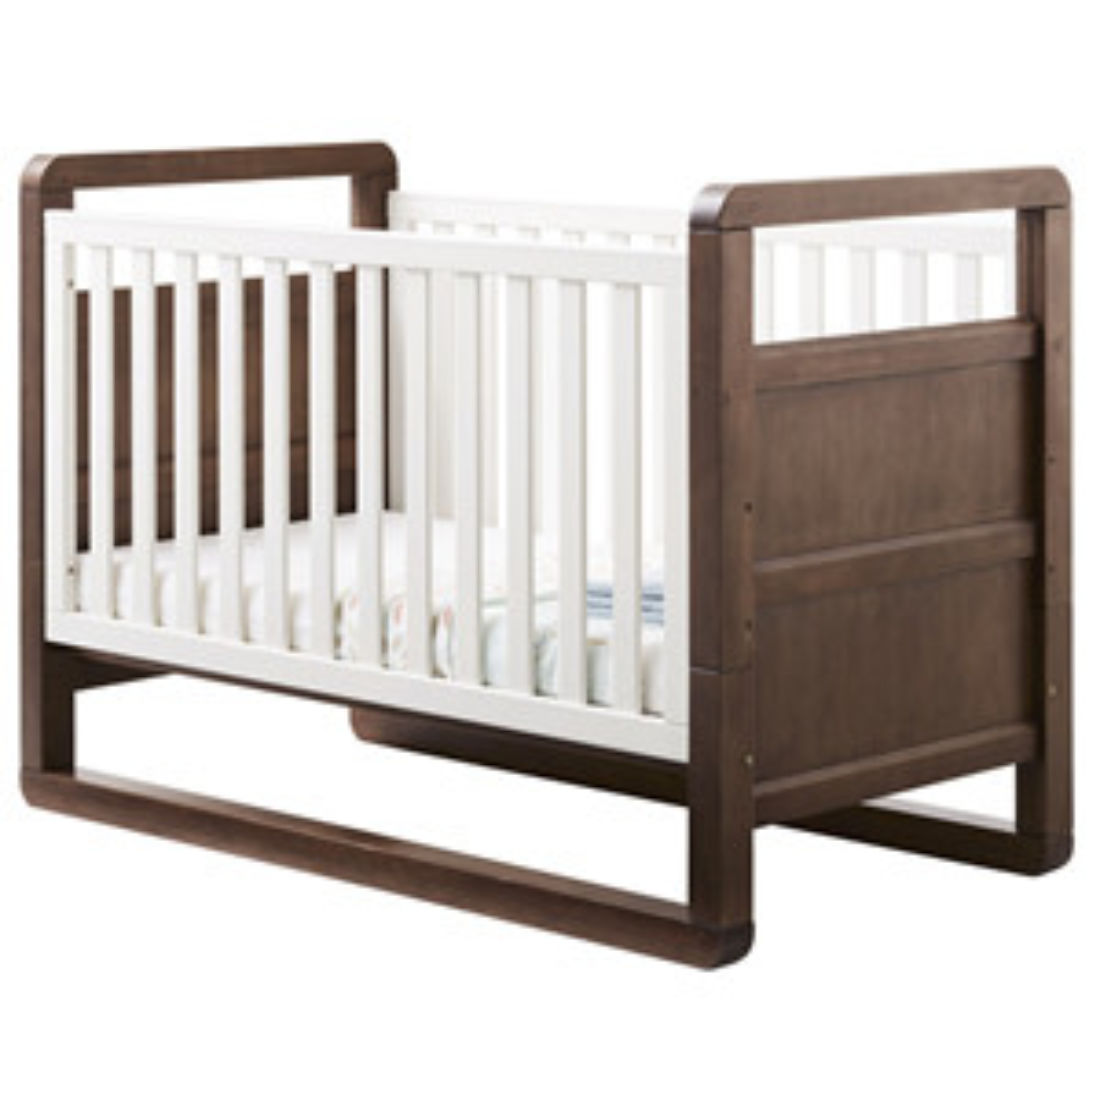 Mattress to fit Cosatto Modo cot bed mattress size is